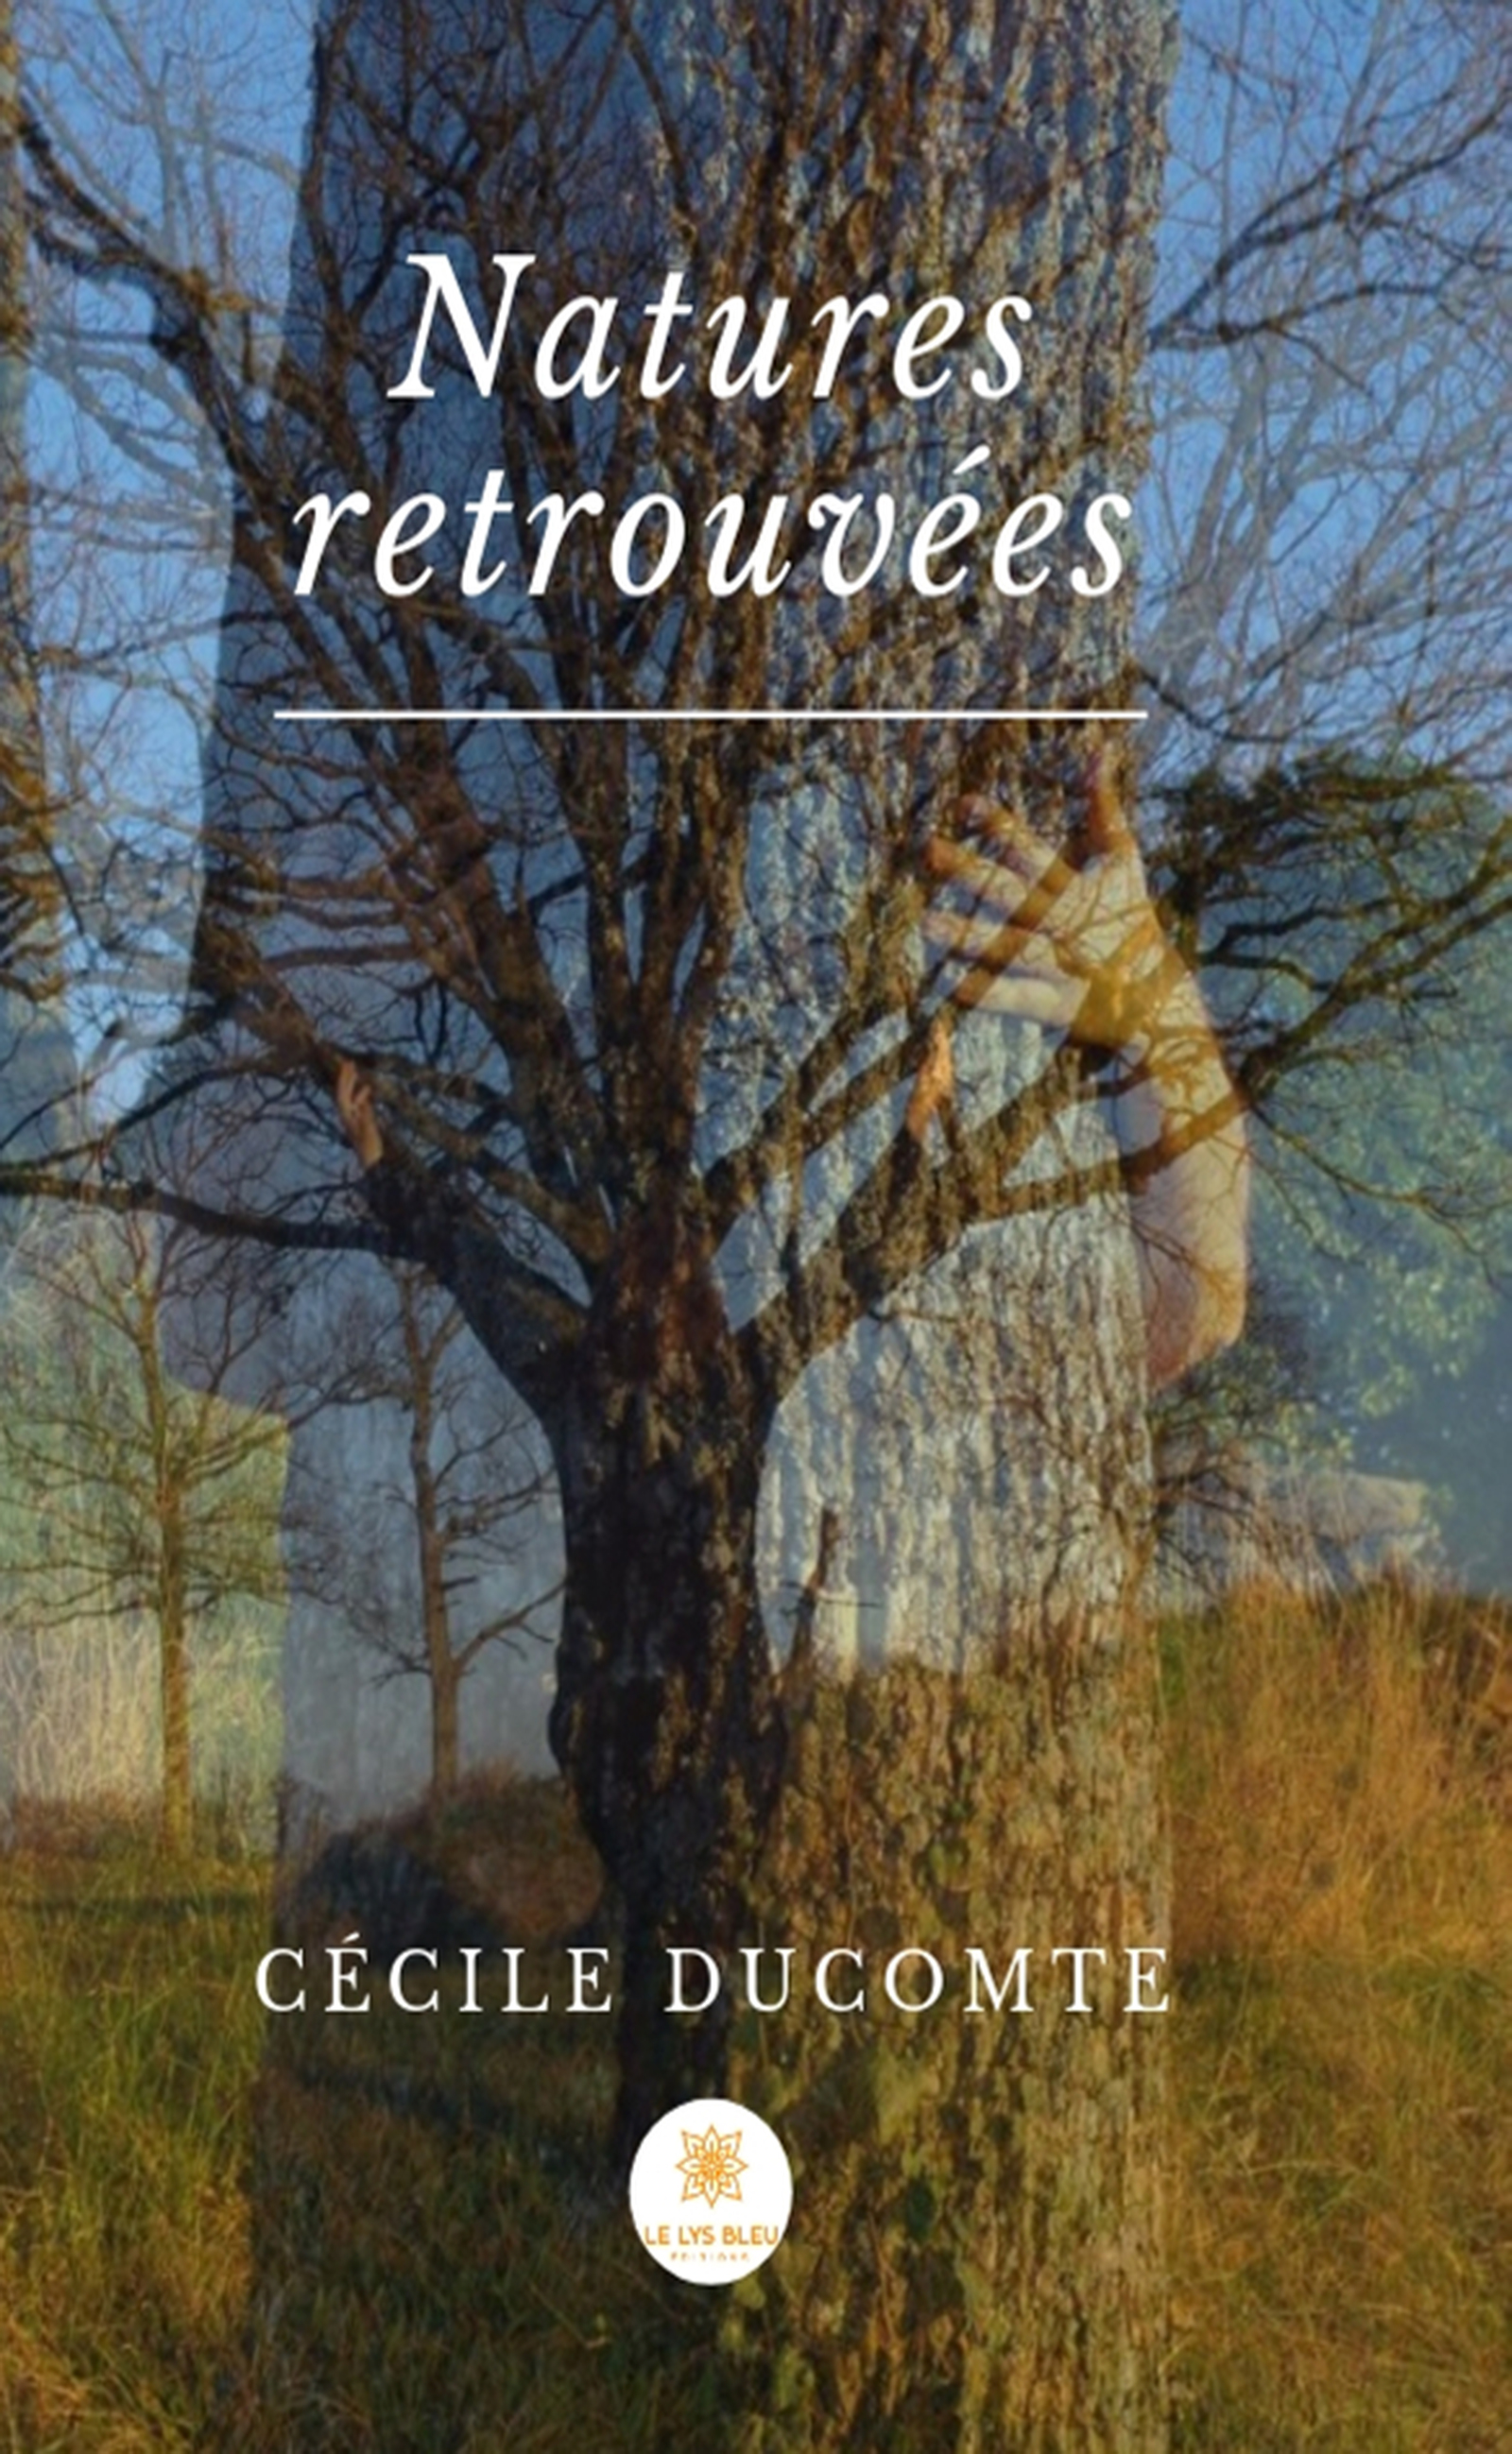 Cover Image of Nature retrouvâee